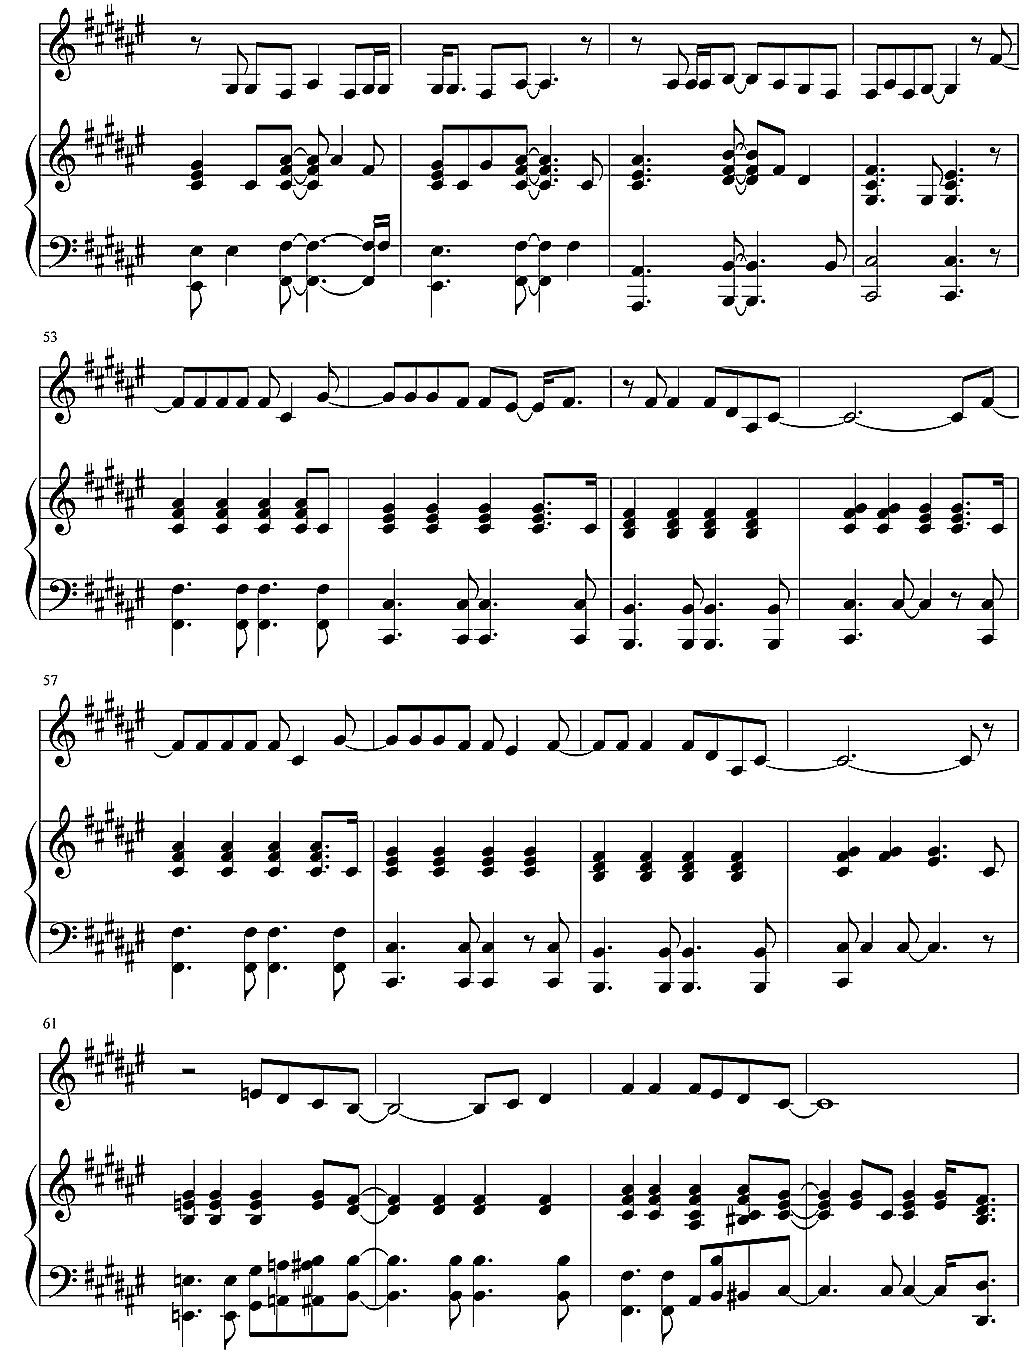 25 minutes4 piano sheet music